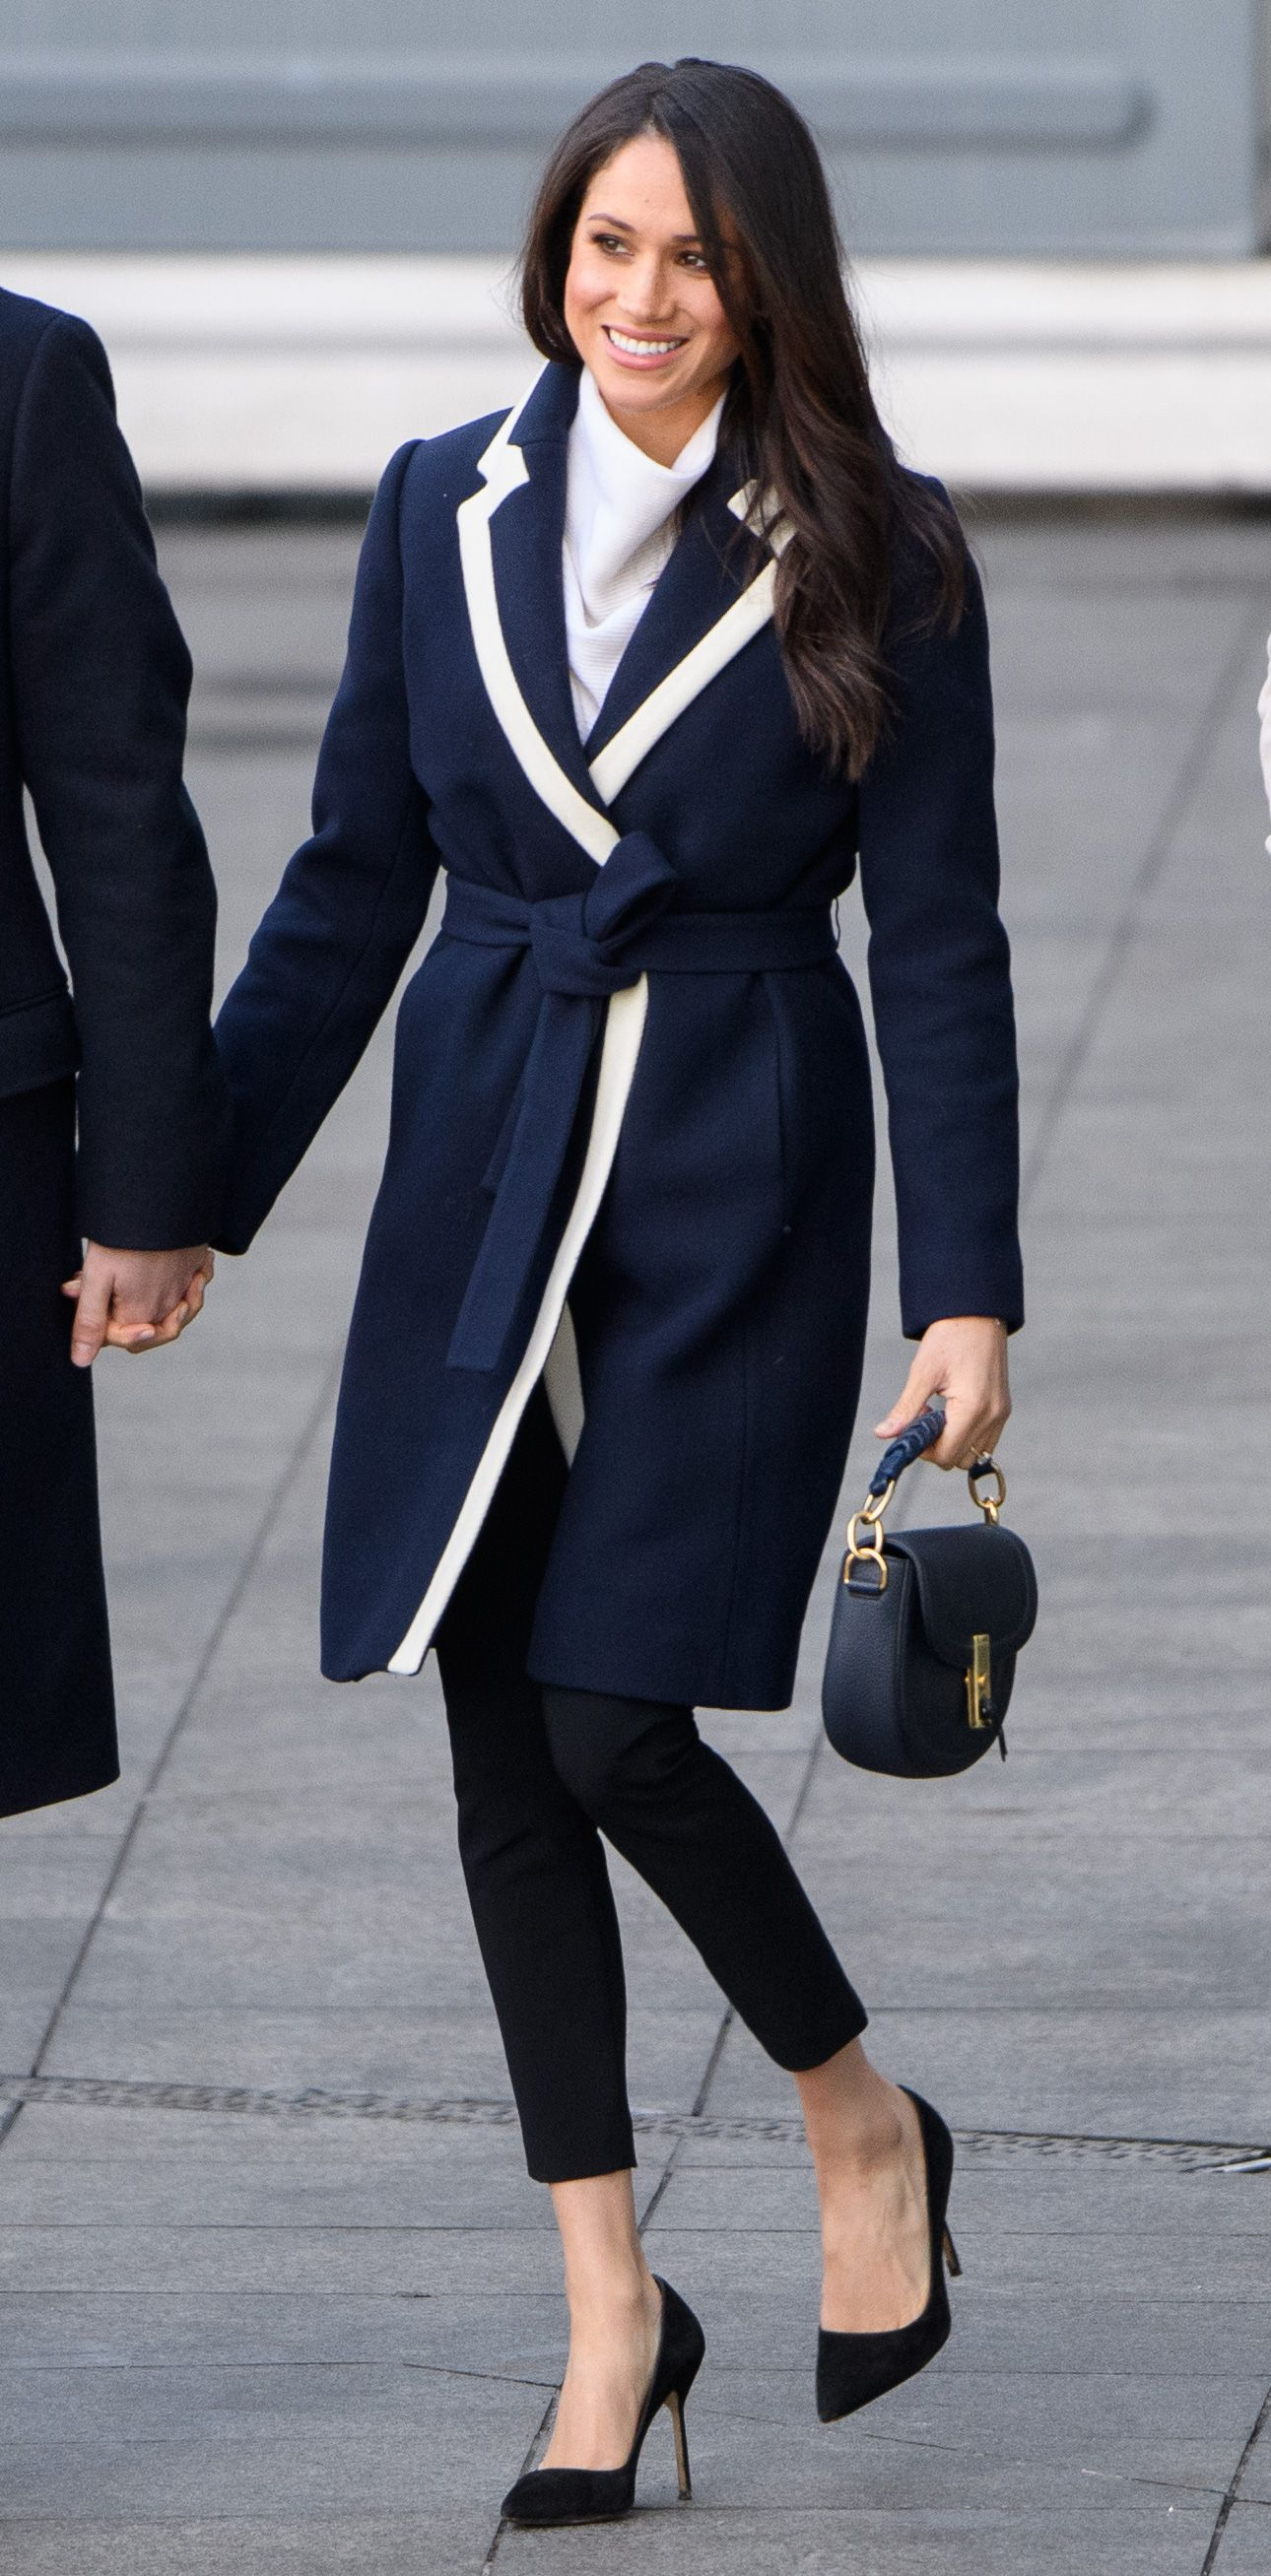 Meghan MarklePrince Harry and Meghan Markle visit Birmingham, UK - 08 Mar 2018 Prince Harry and Ms. Markle will firstly attend an event at Millennium Point to celebrate International Women's Day, which aims to inspire the next generation of young women to pursue careers in Science, Technology, Engineering and Maths (STEM). Hosted by social enterprise Stemettes, the event will bring together female students from local secondary schools and include interactive activities, a panel discussion, speed networking opportunities with local businesses, and information on work experience, apprenticeships, A-level choices, and university degrees in STEM. Prince Harry and Ms. Markle will join the young women as they take part in building apps and touchpads, before hearing more about their motivations to pursue STEM subjects.